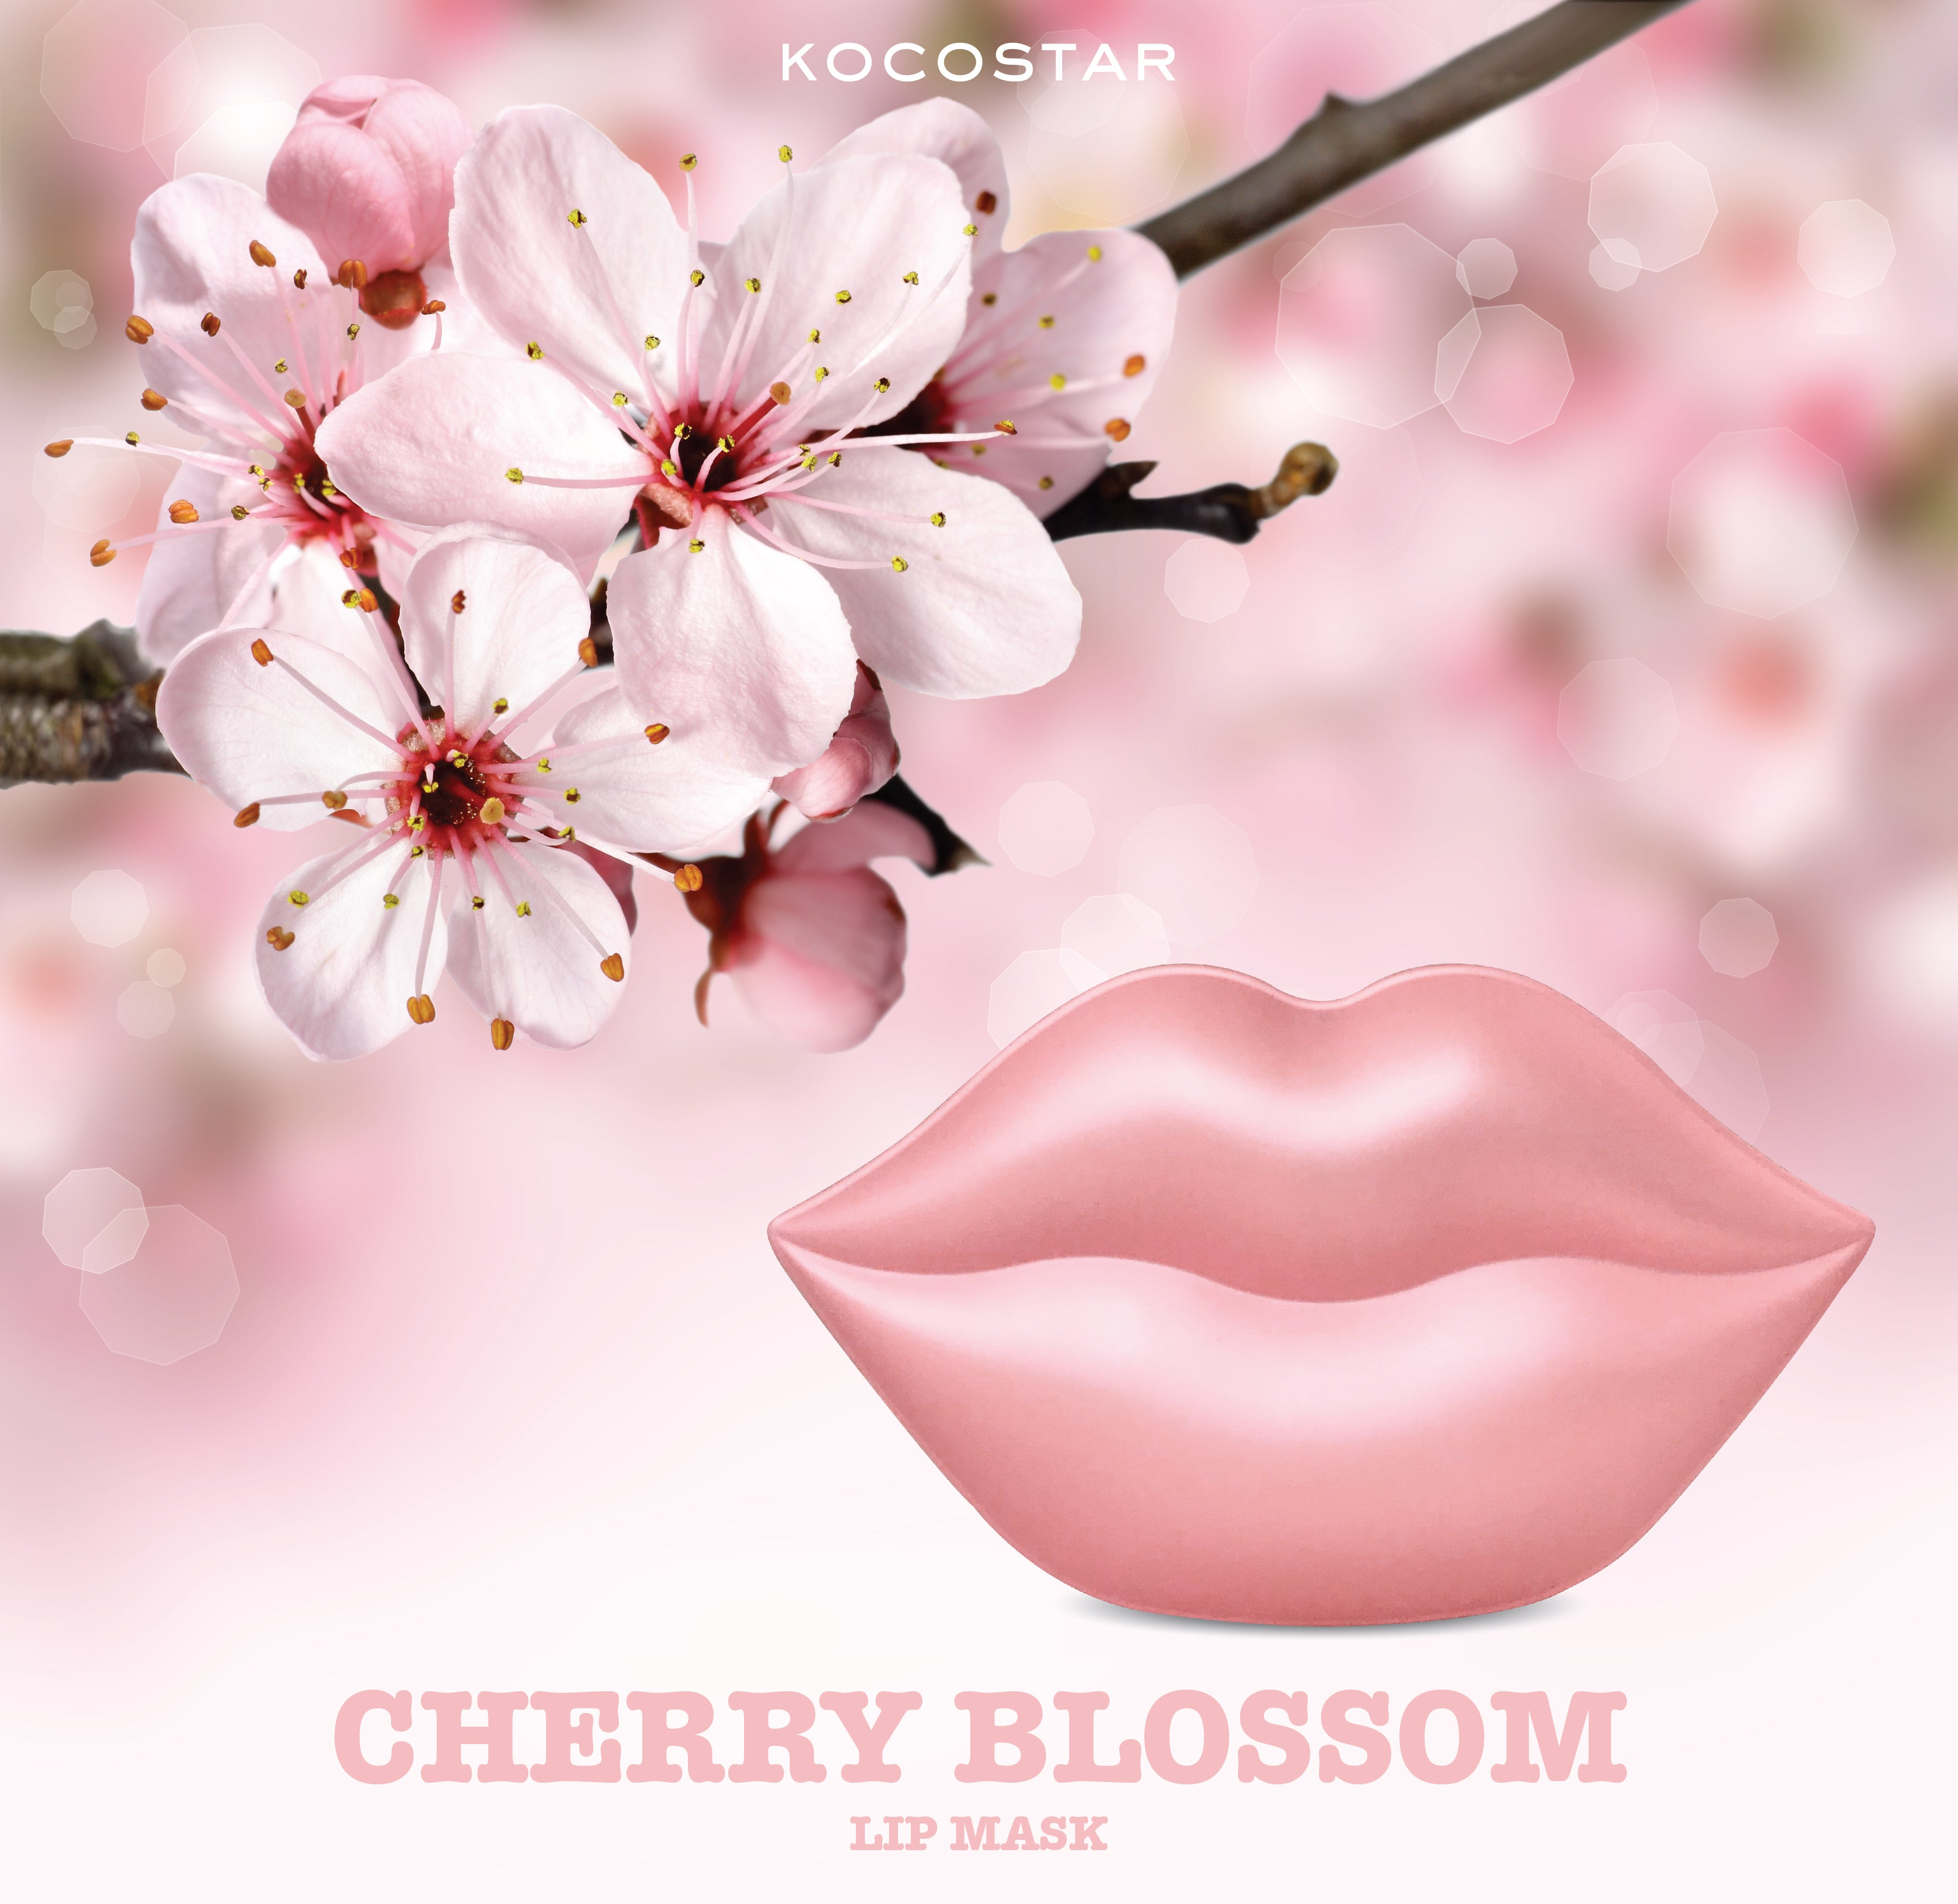 LIP MASK CHERRY BLOSSOM - Firming & Vitality